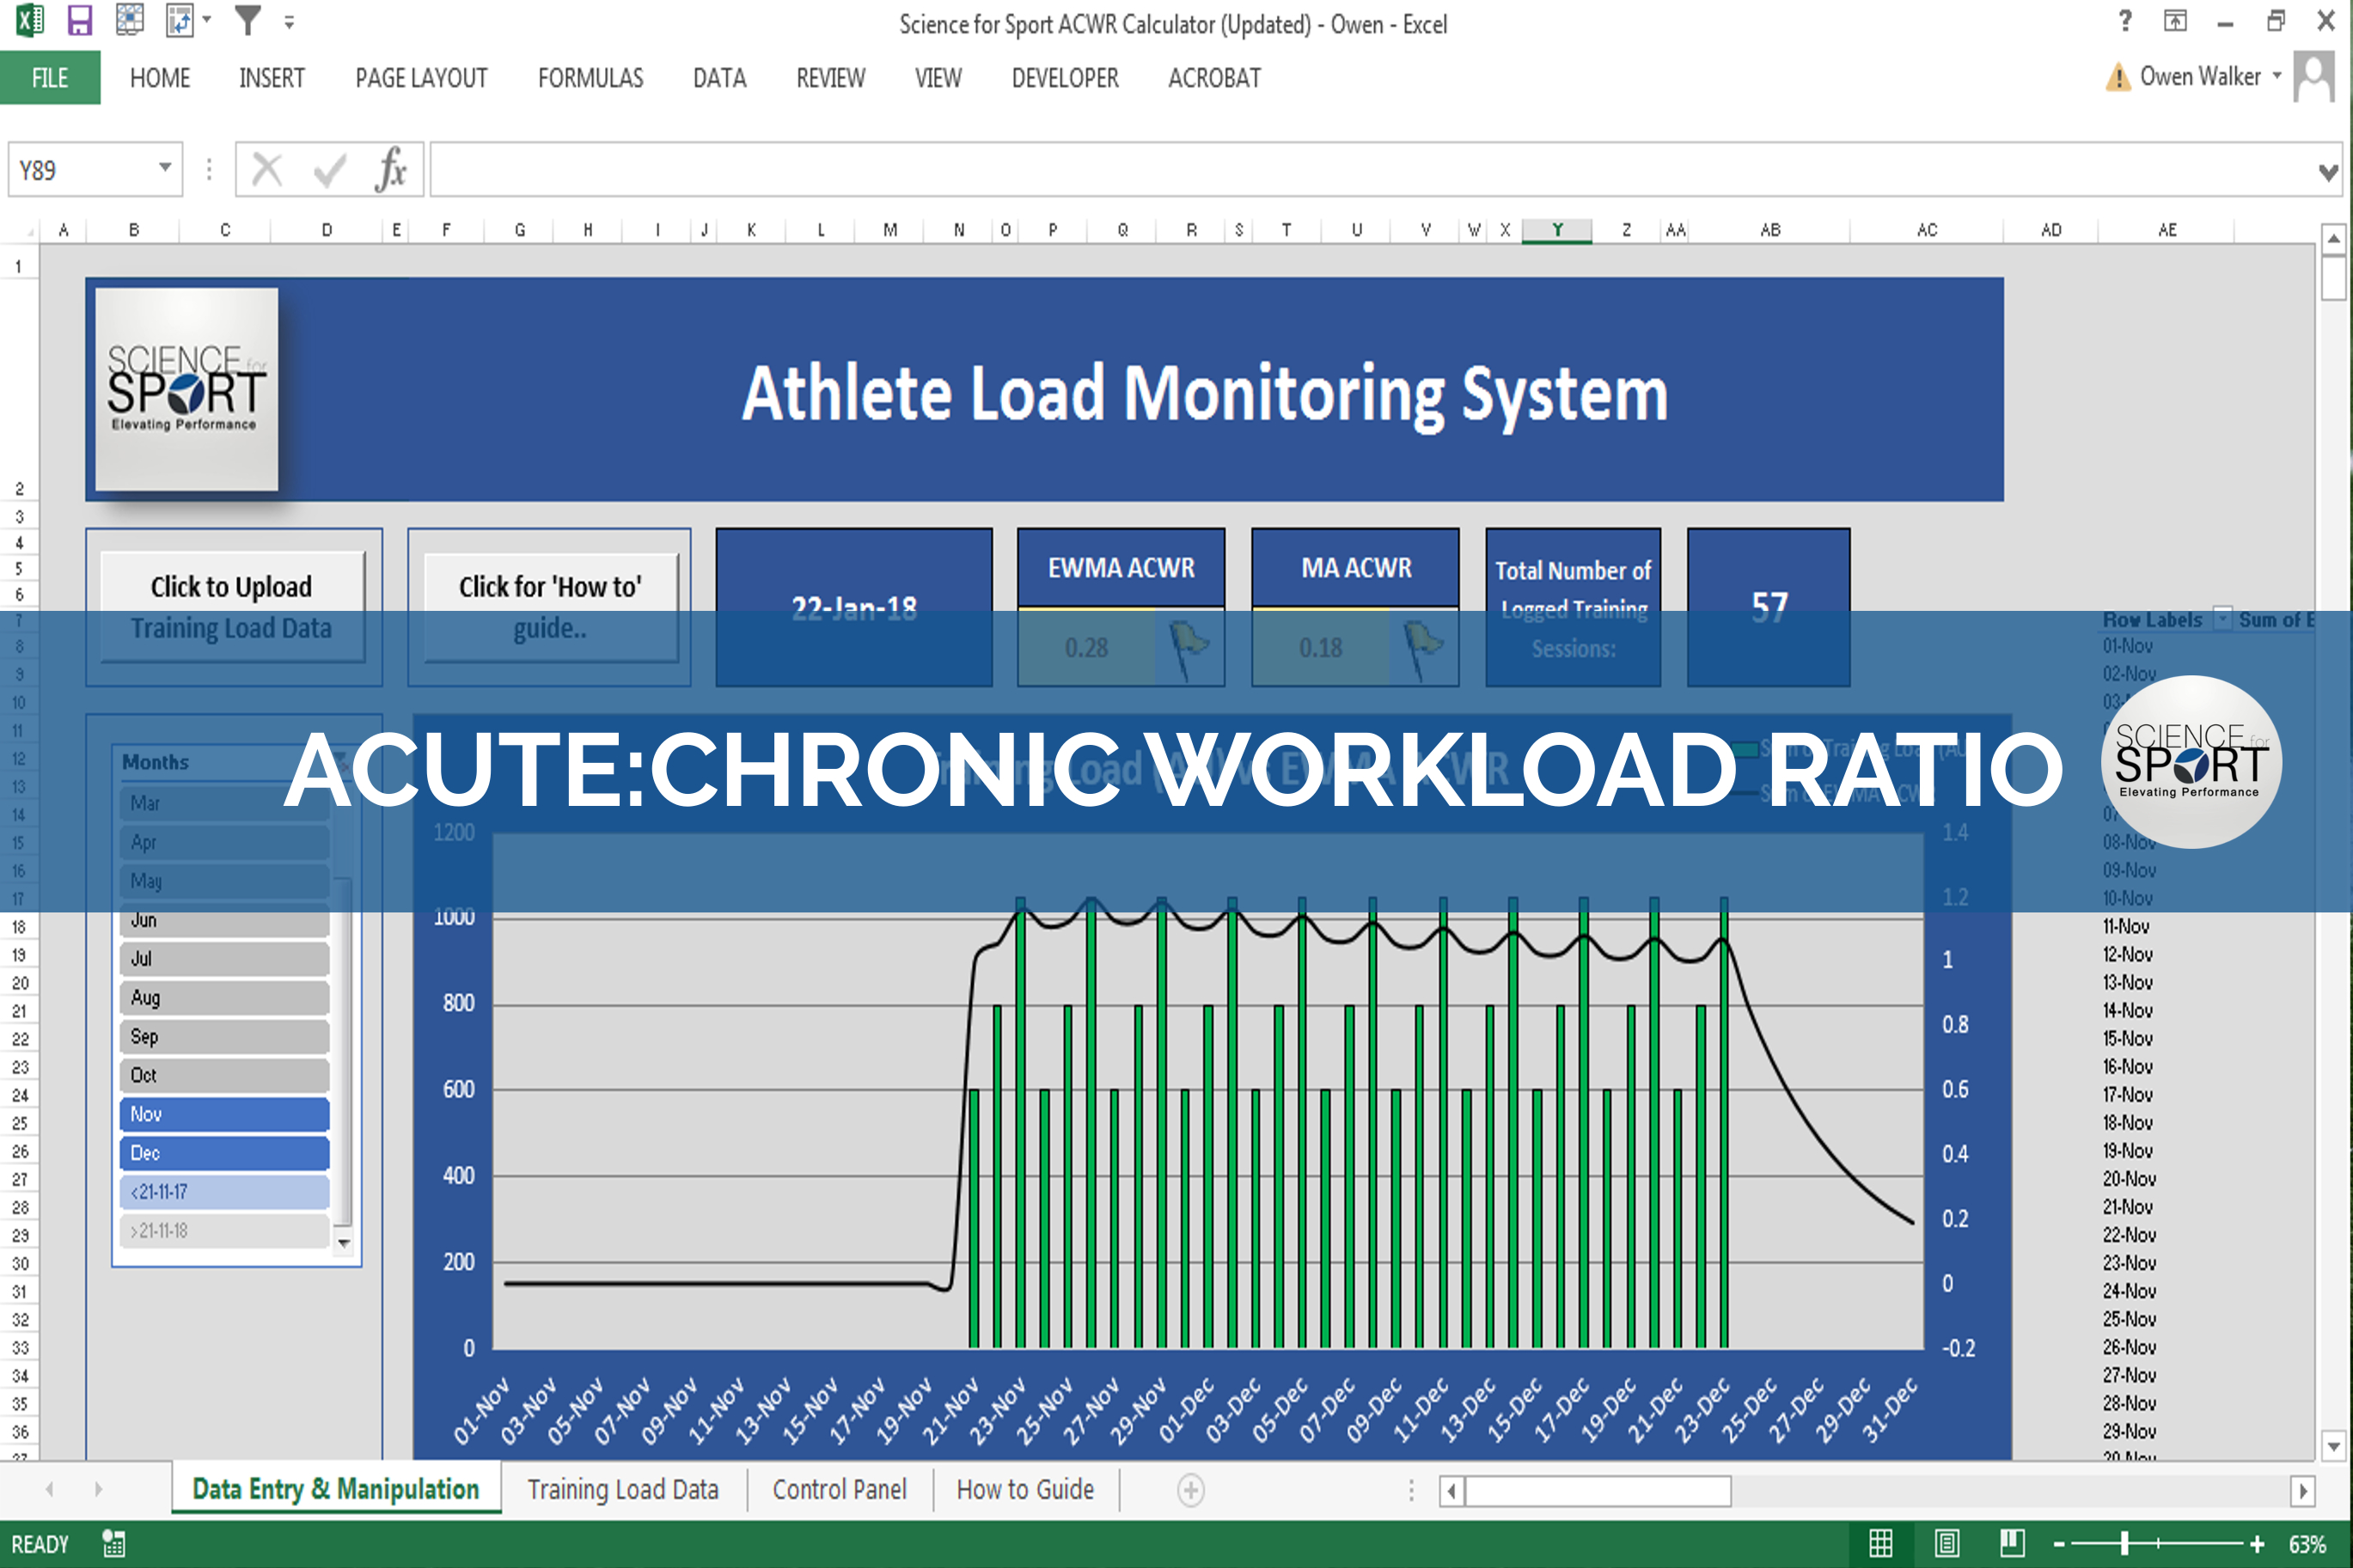 Acute:Chronic Workload Ratio | Science for Sport